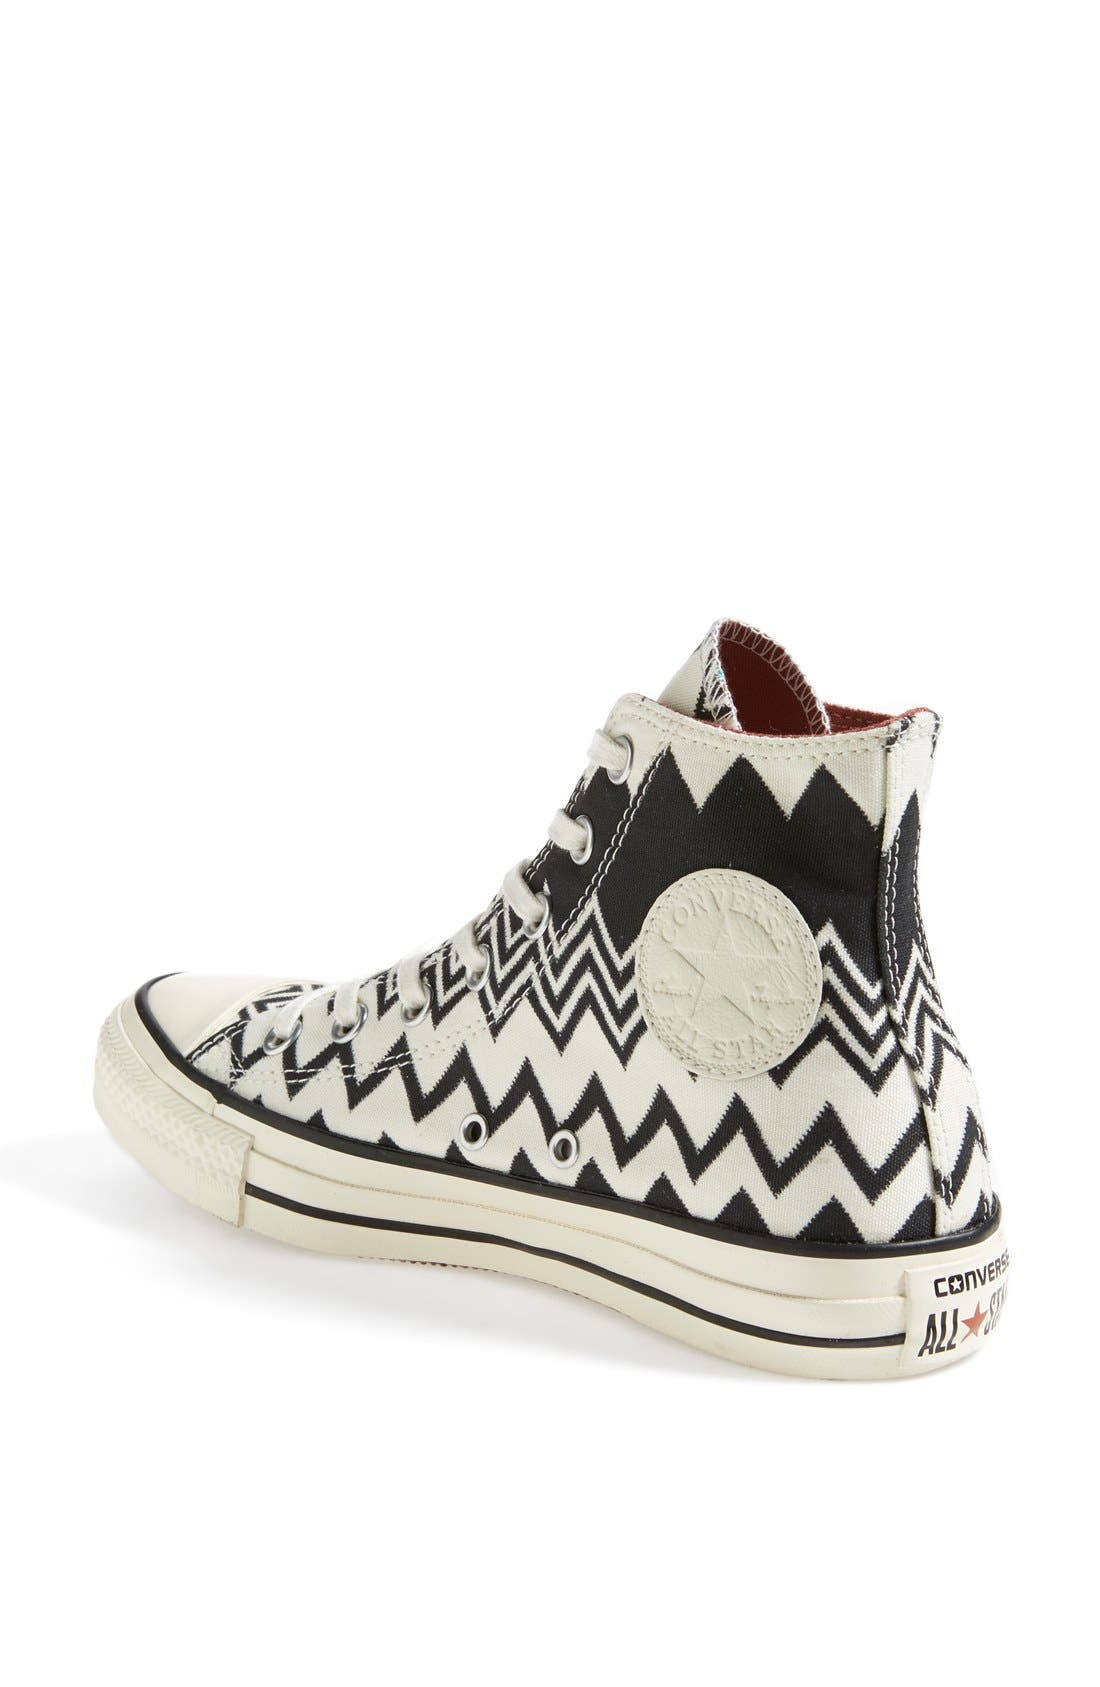 x Missoni Chuck Taylor<sup>®</sup> All Star<sup>®</sup> High Top Sneaker,                             Alternate thumbnail 2, color,                             001